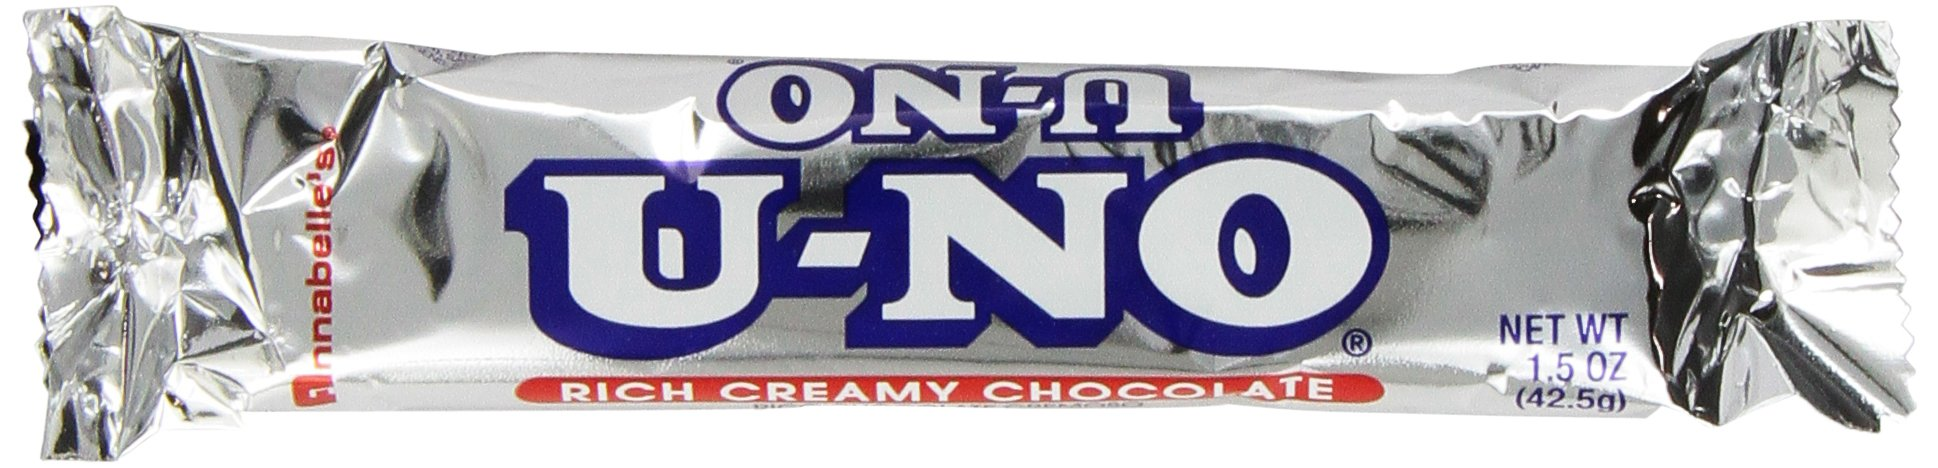 U-No Bars, 1.5-Ounce Bars (Pack of 24) by UNO